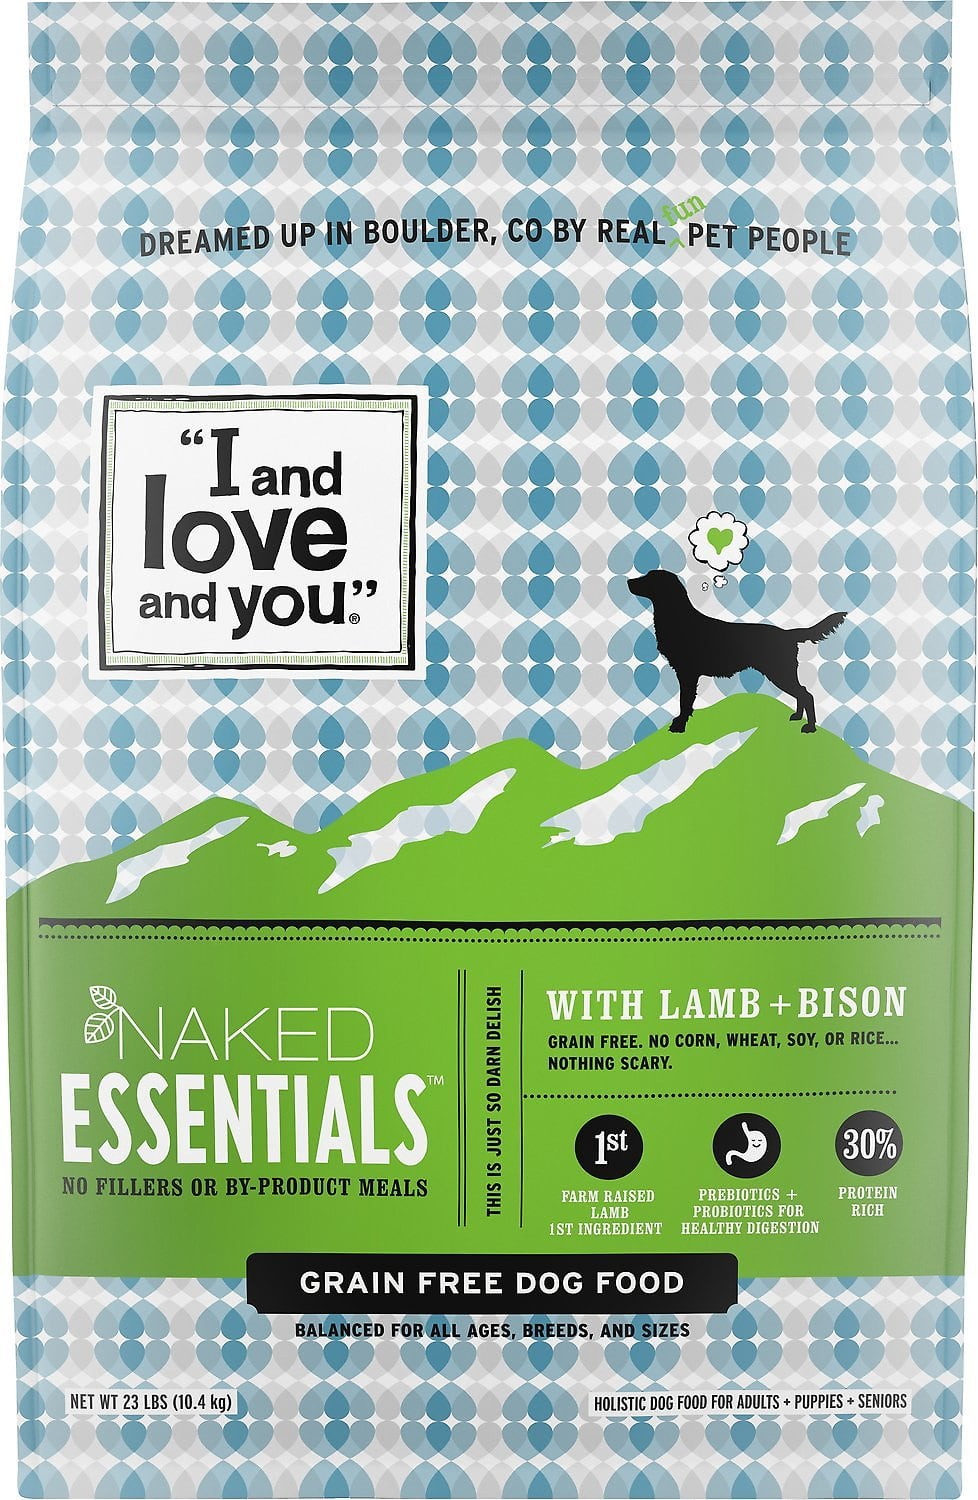 40-Lb I and Love and You Naked Essentials Grain-Free Dry Dog Food (Lamb & Bison)